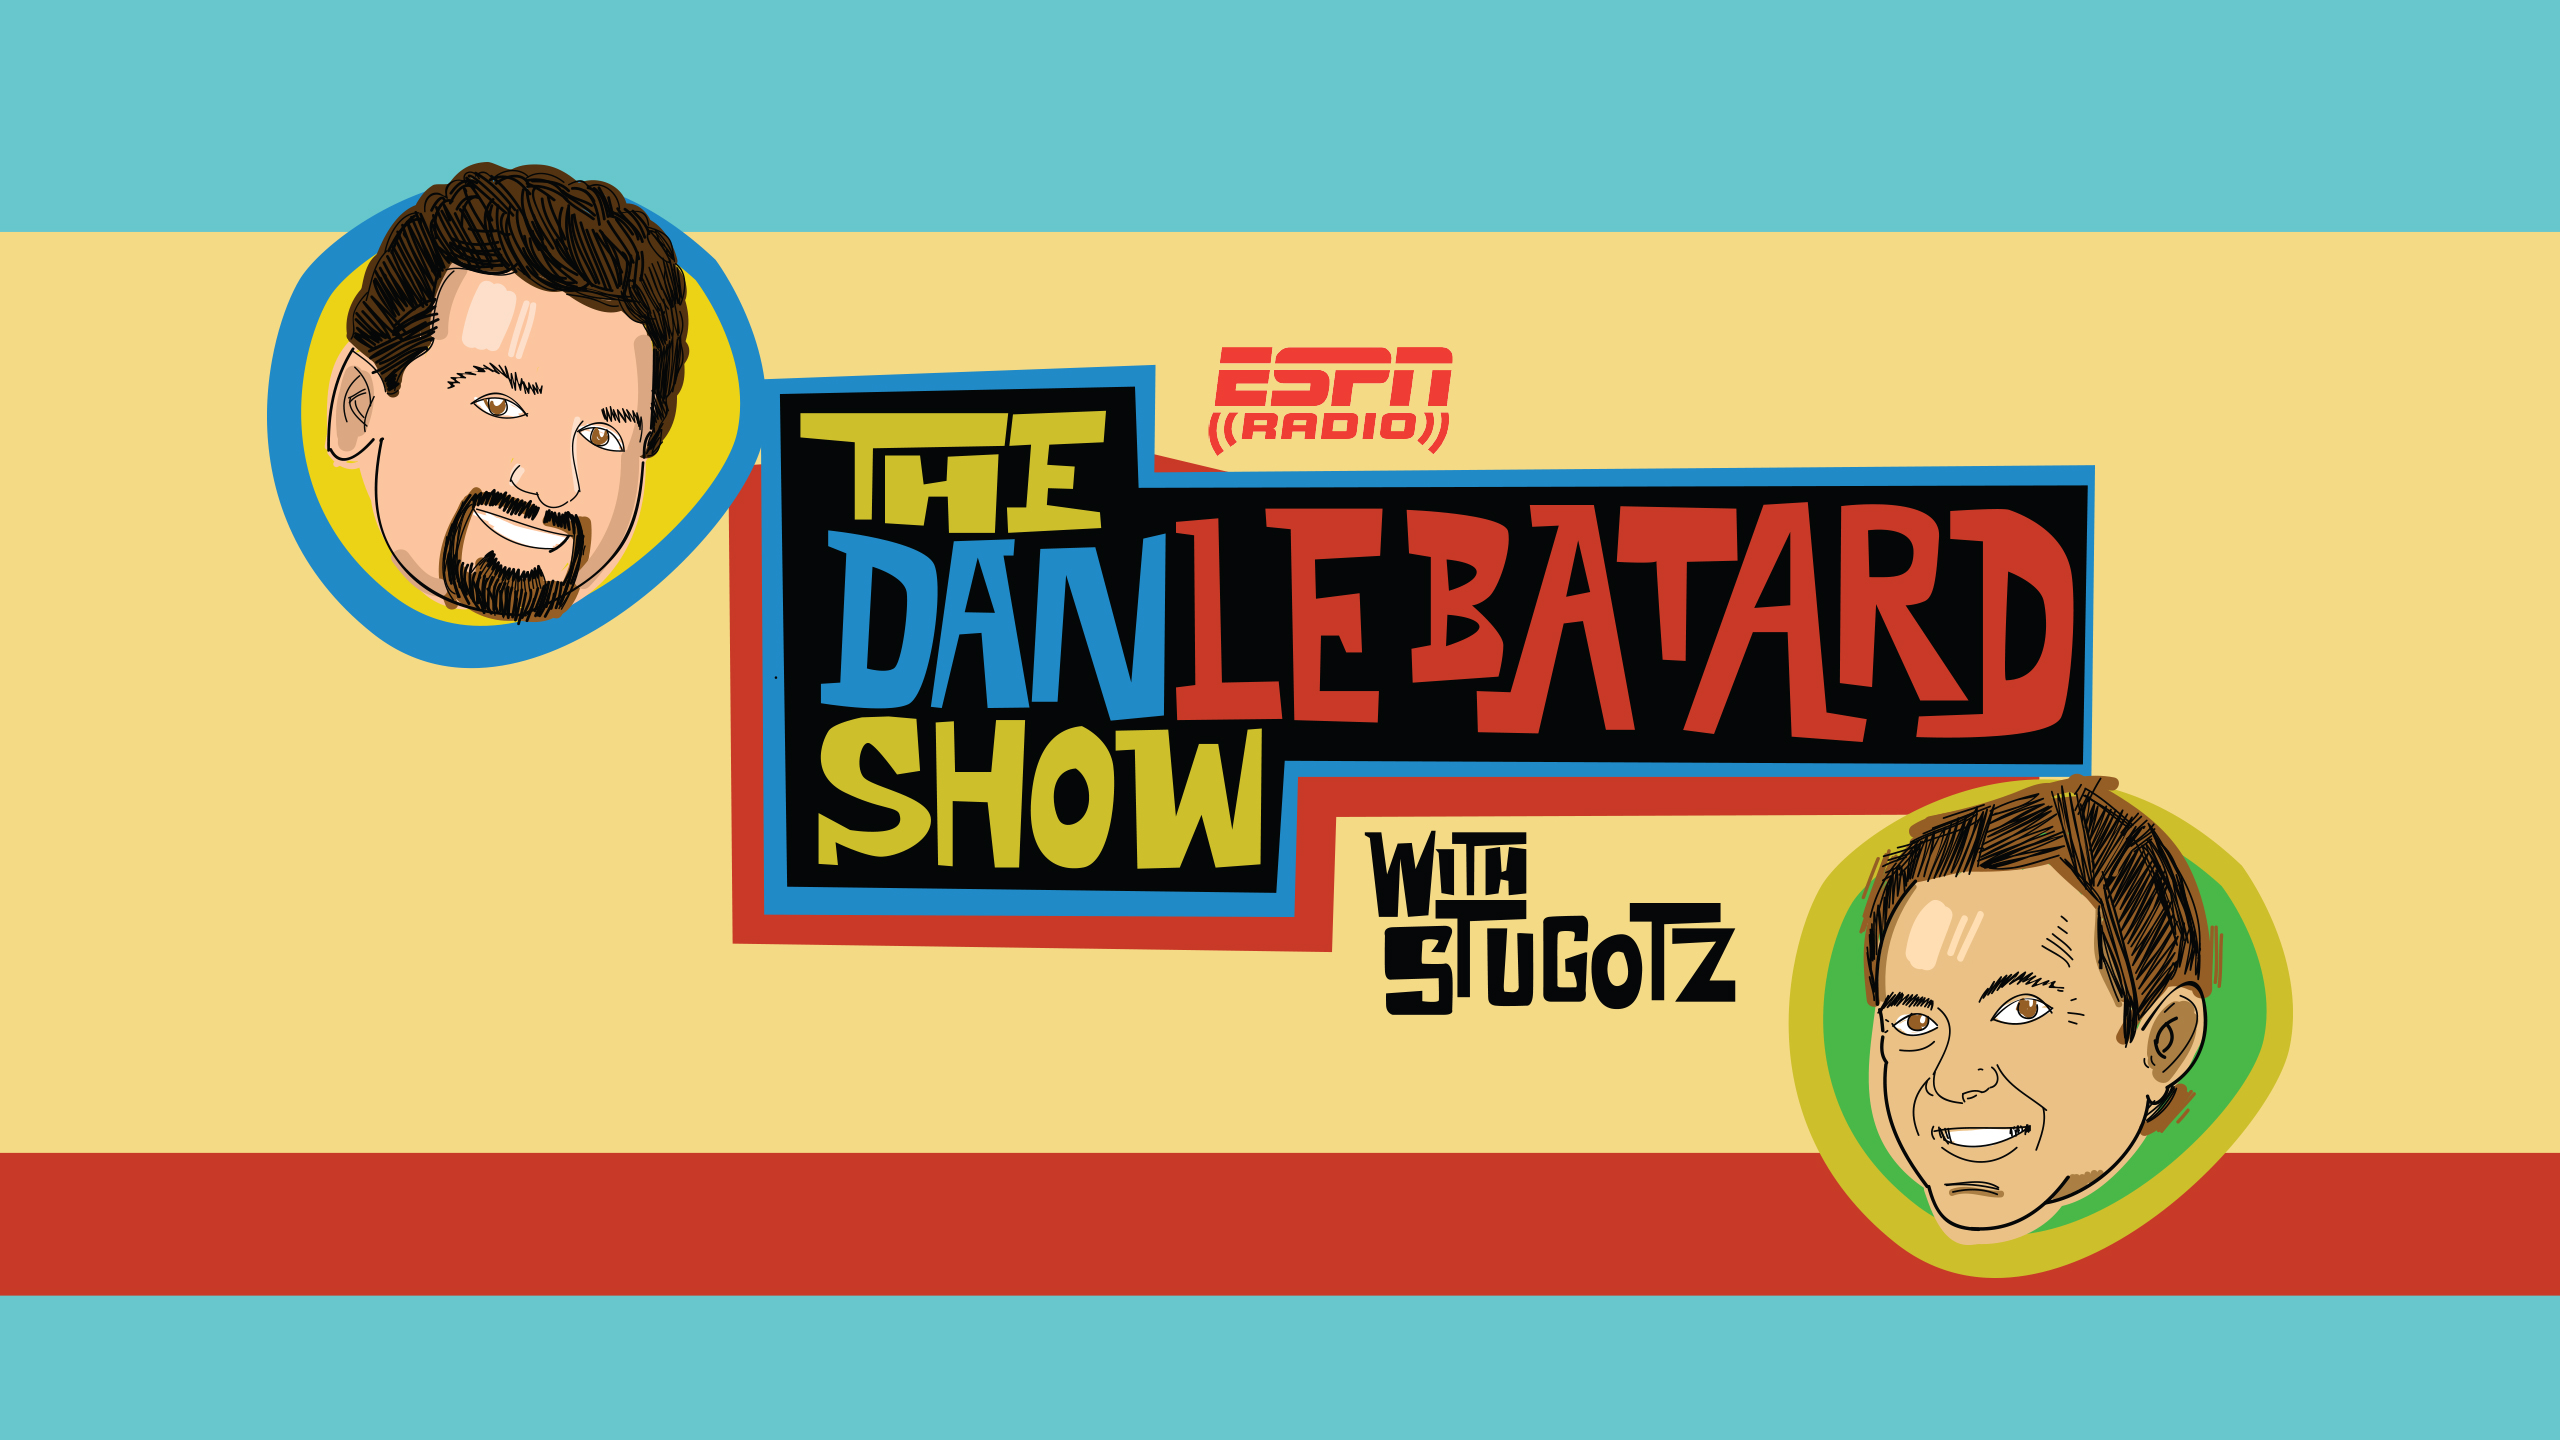 Thu, 2/21 - The Dan Le Batard Show with Stugotz Presented by Progressive